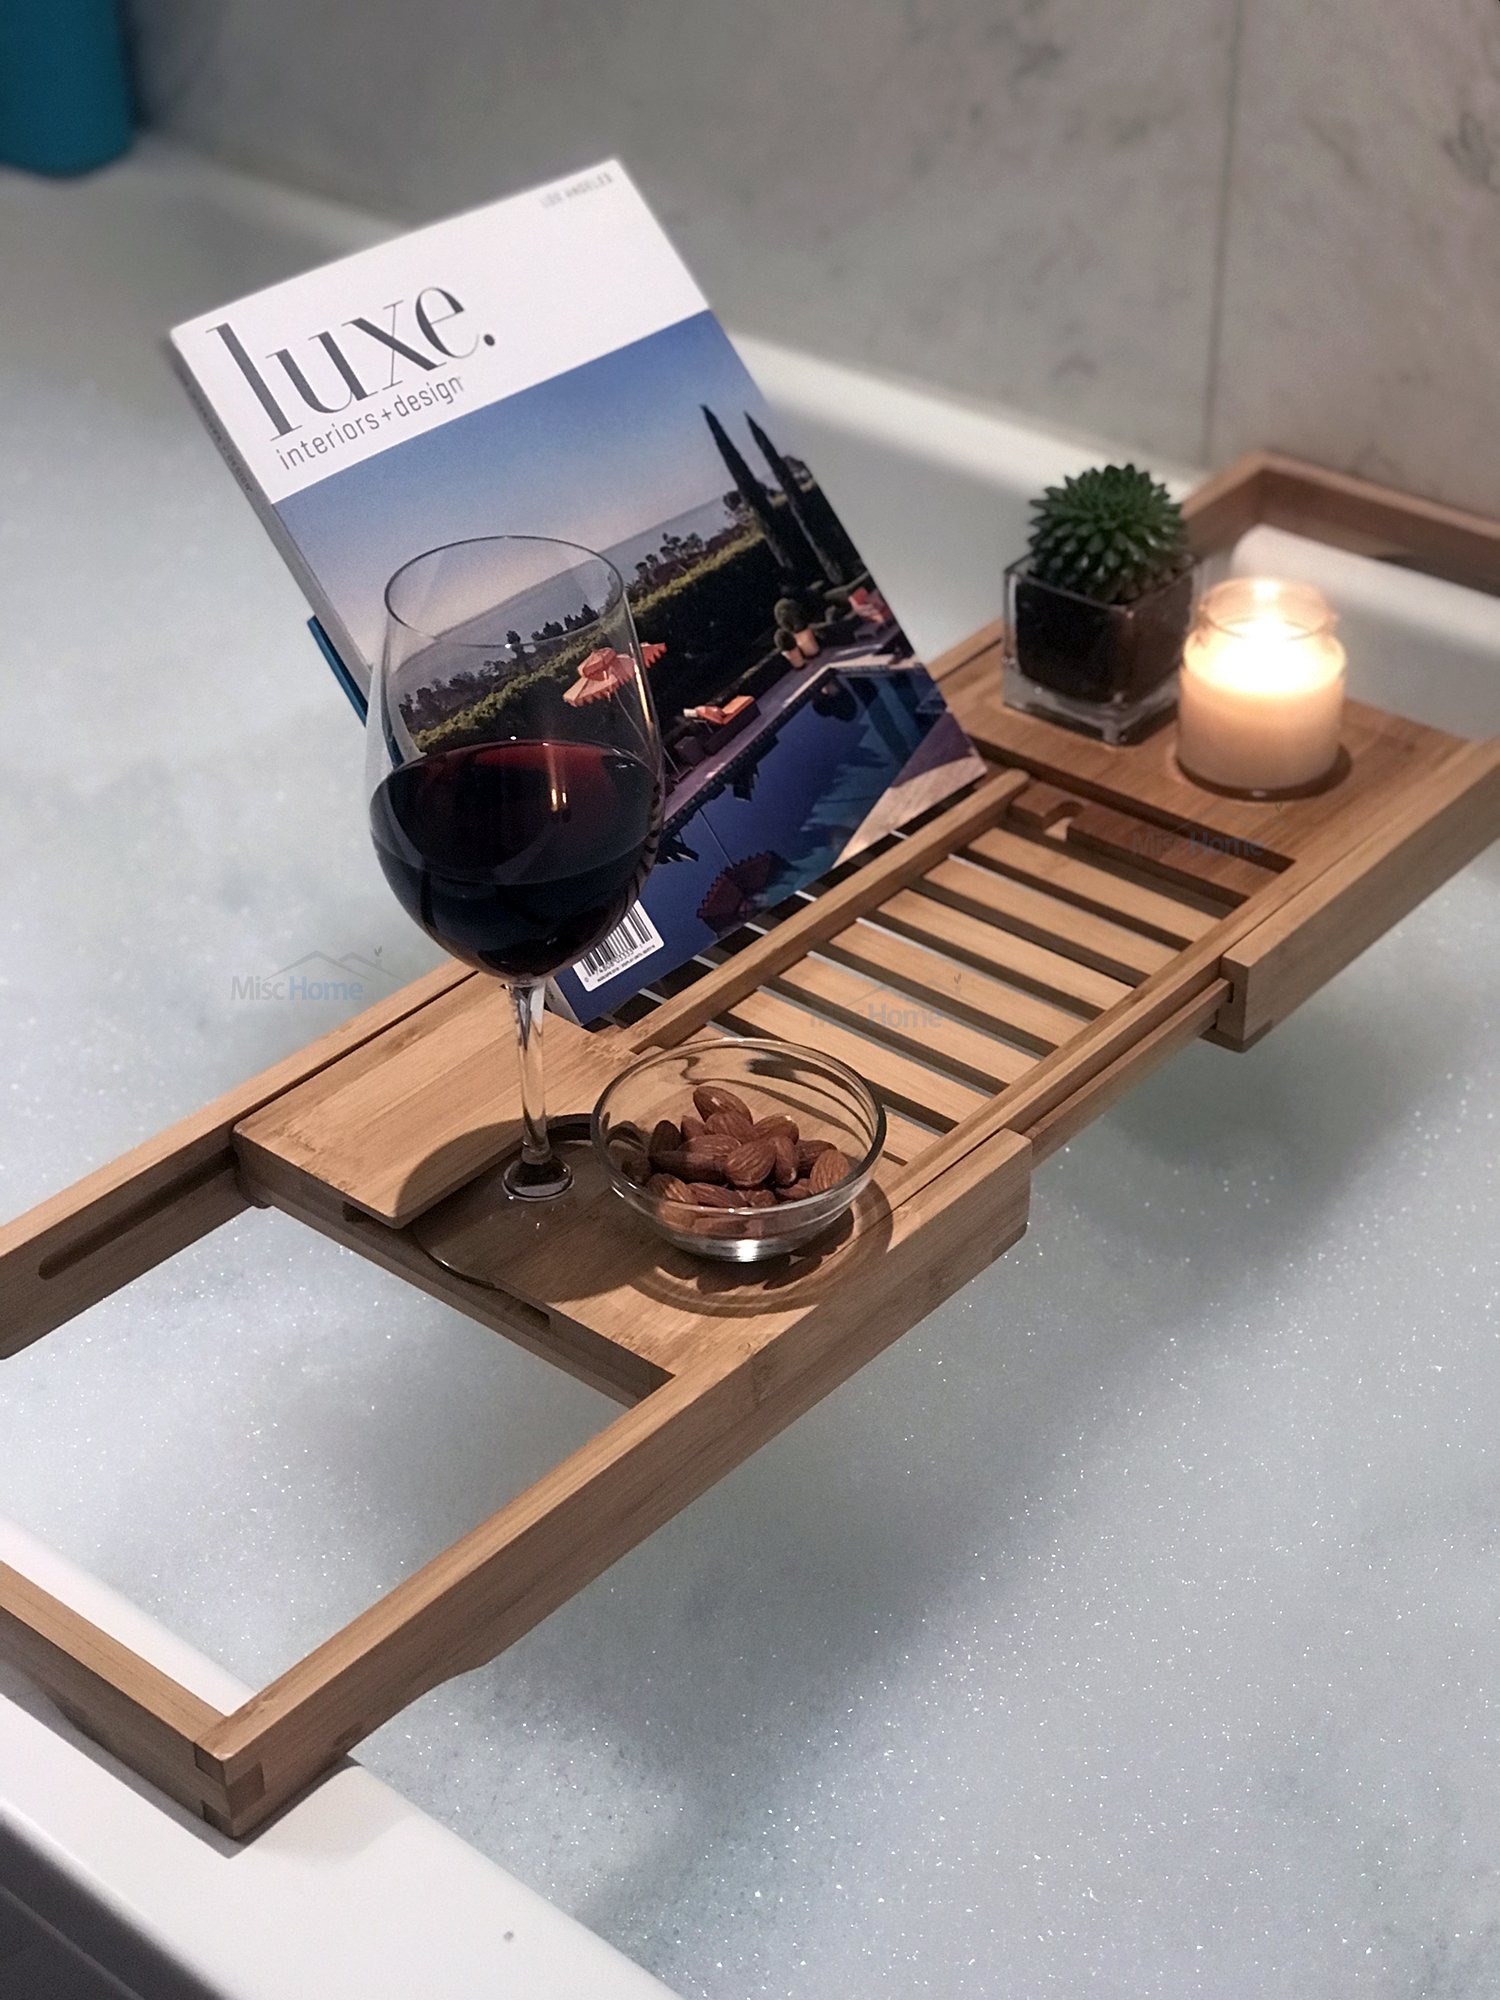 [Luxury] Bamboo Bathtub Caddy Tray with Expanding Sides, Premium Bath Tray, Tablet Holder, Wine Glass Holder, Eco Friendly Spay Tray for Bathtub Tray with Wine Holder for Bathtub by Misc Home (Image #2)